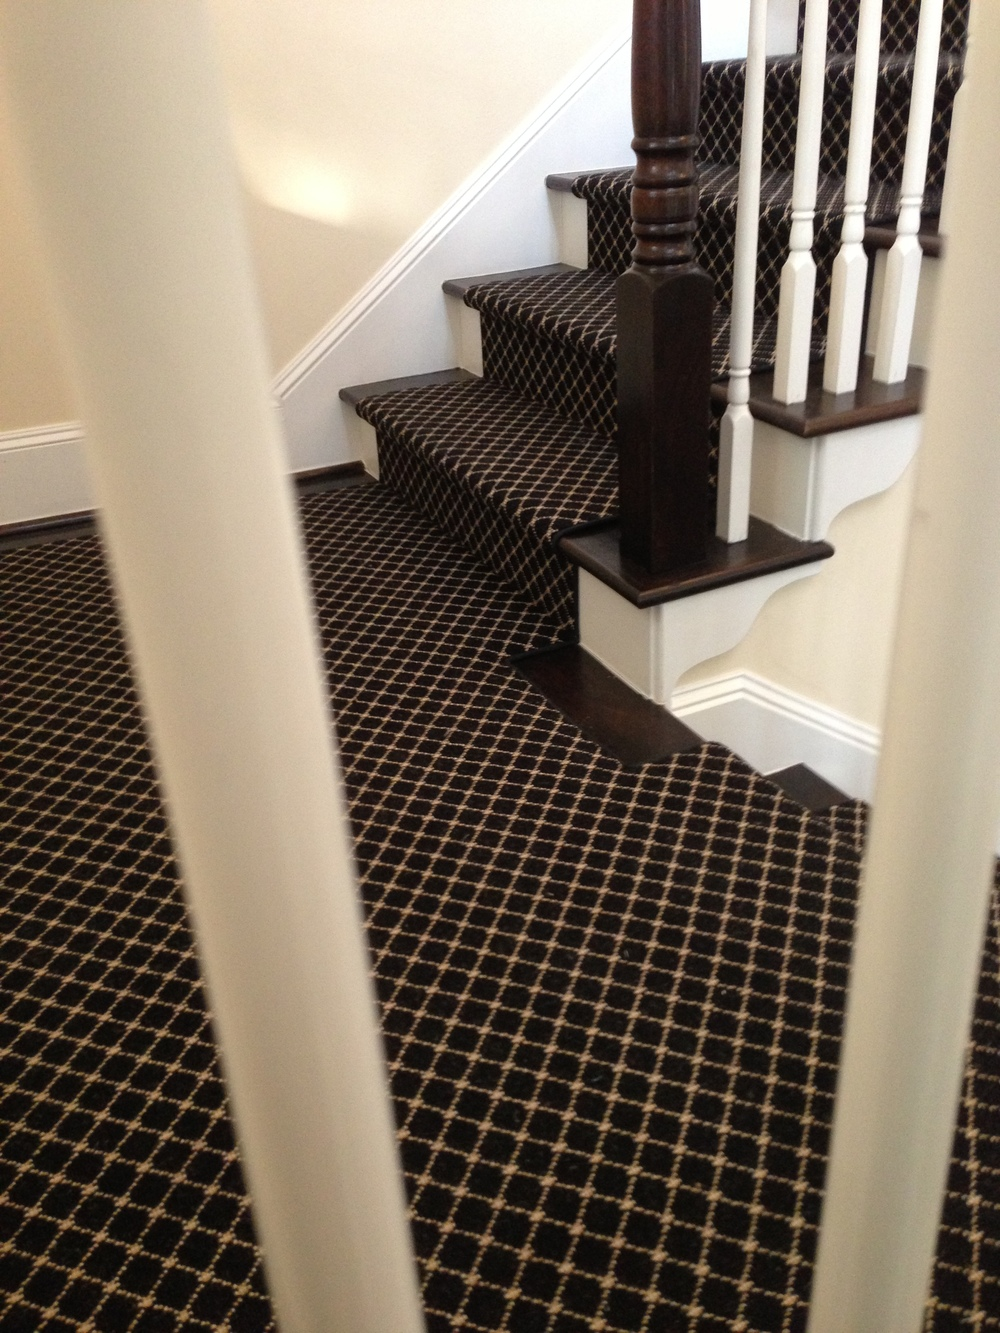 Take a look at this striking runner we installed after the Holidays on a stair in a coastal style home. Stark carpet is one of my faves. :-)